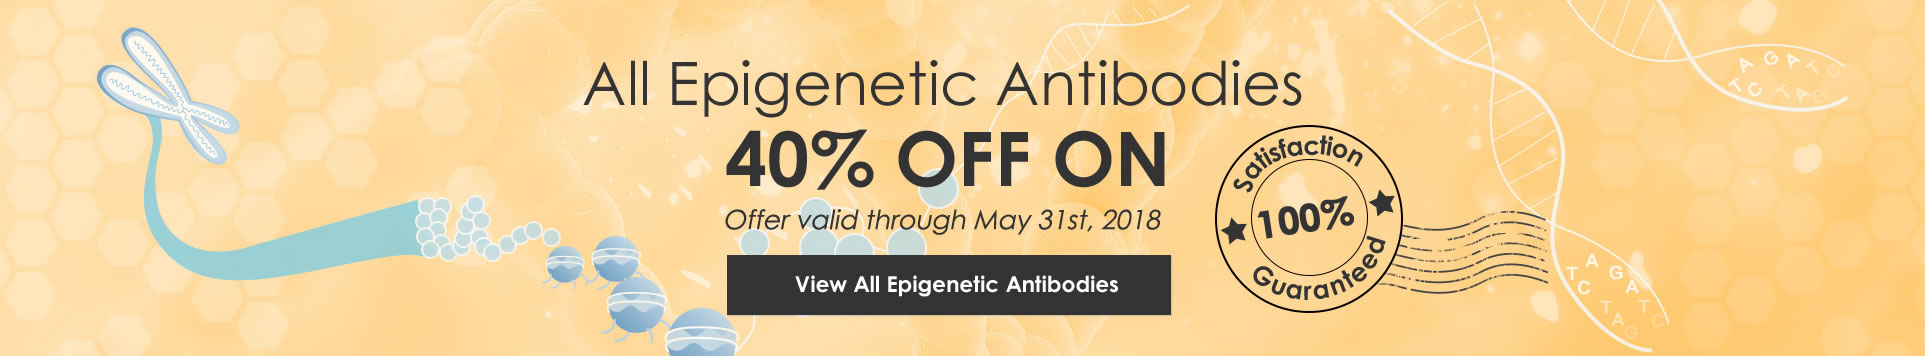 40% Off on All Epigenetic Antibodies, 100% Satisfaction Guaranteed, View the Full List of All Epigenetic Antibodies